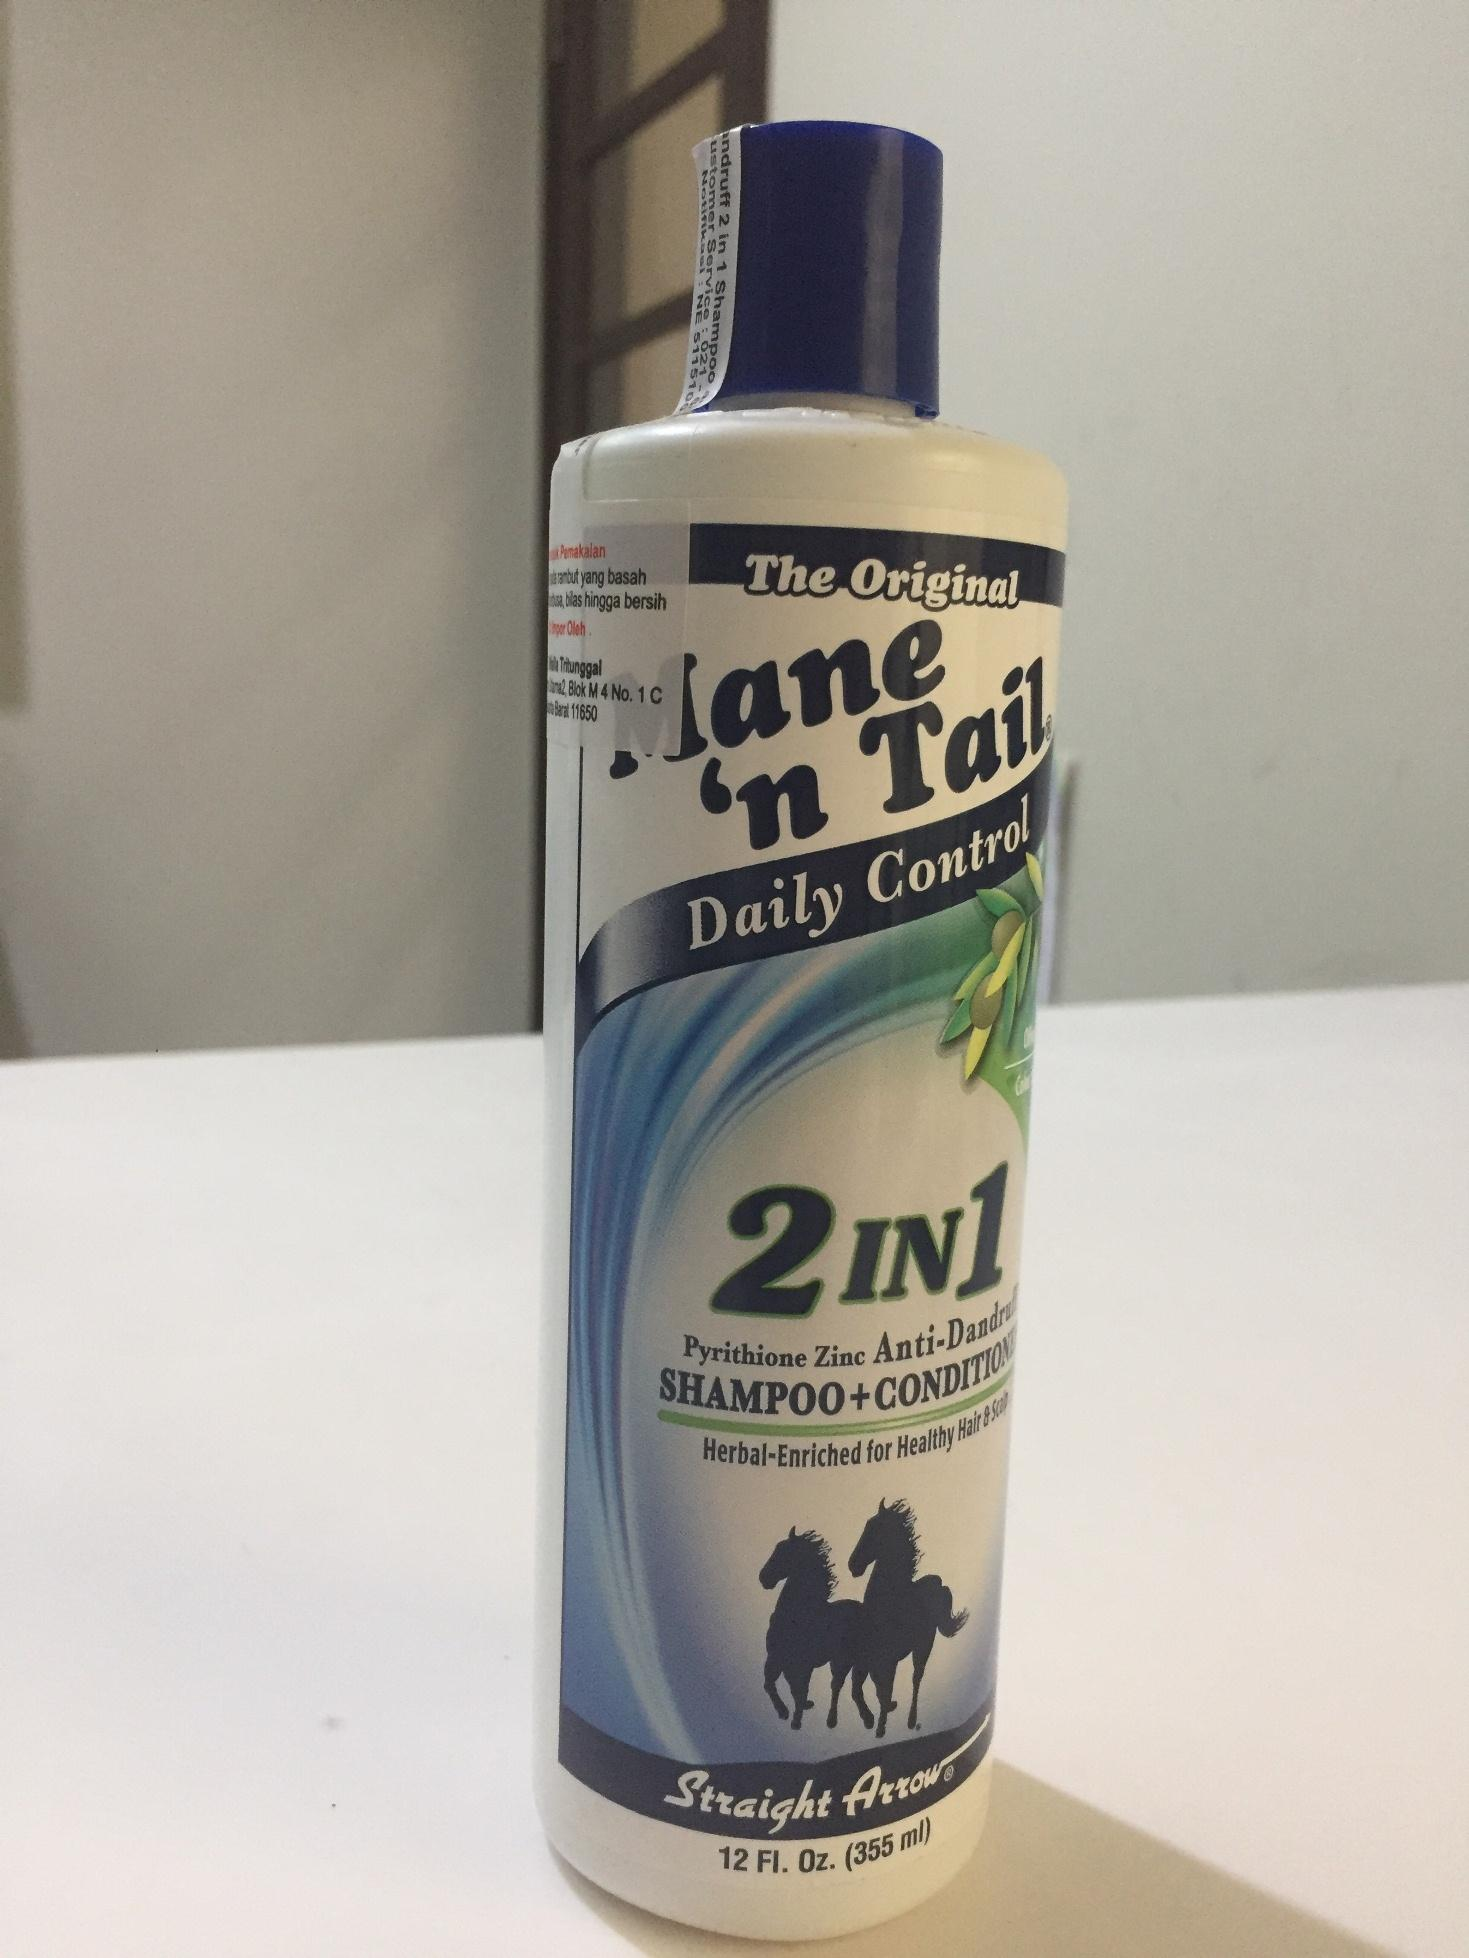 SHAMPOO / SHAMPO / SAMPO KUDA MANE N TAIL ANTI DANDRUFF 2 IN 1